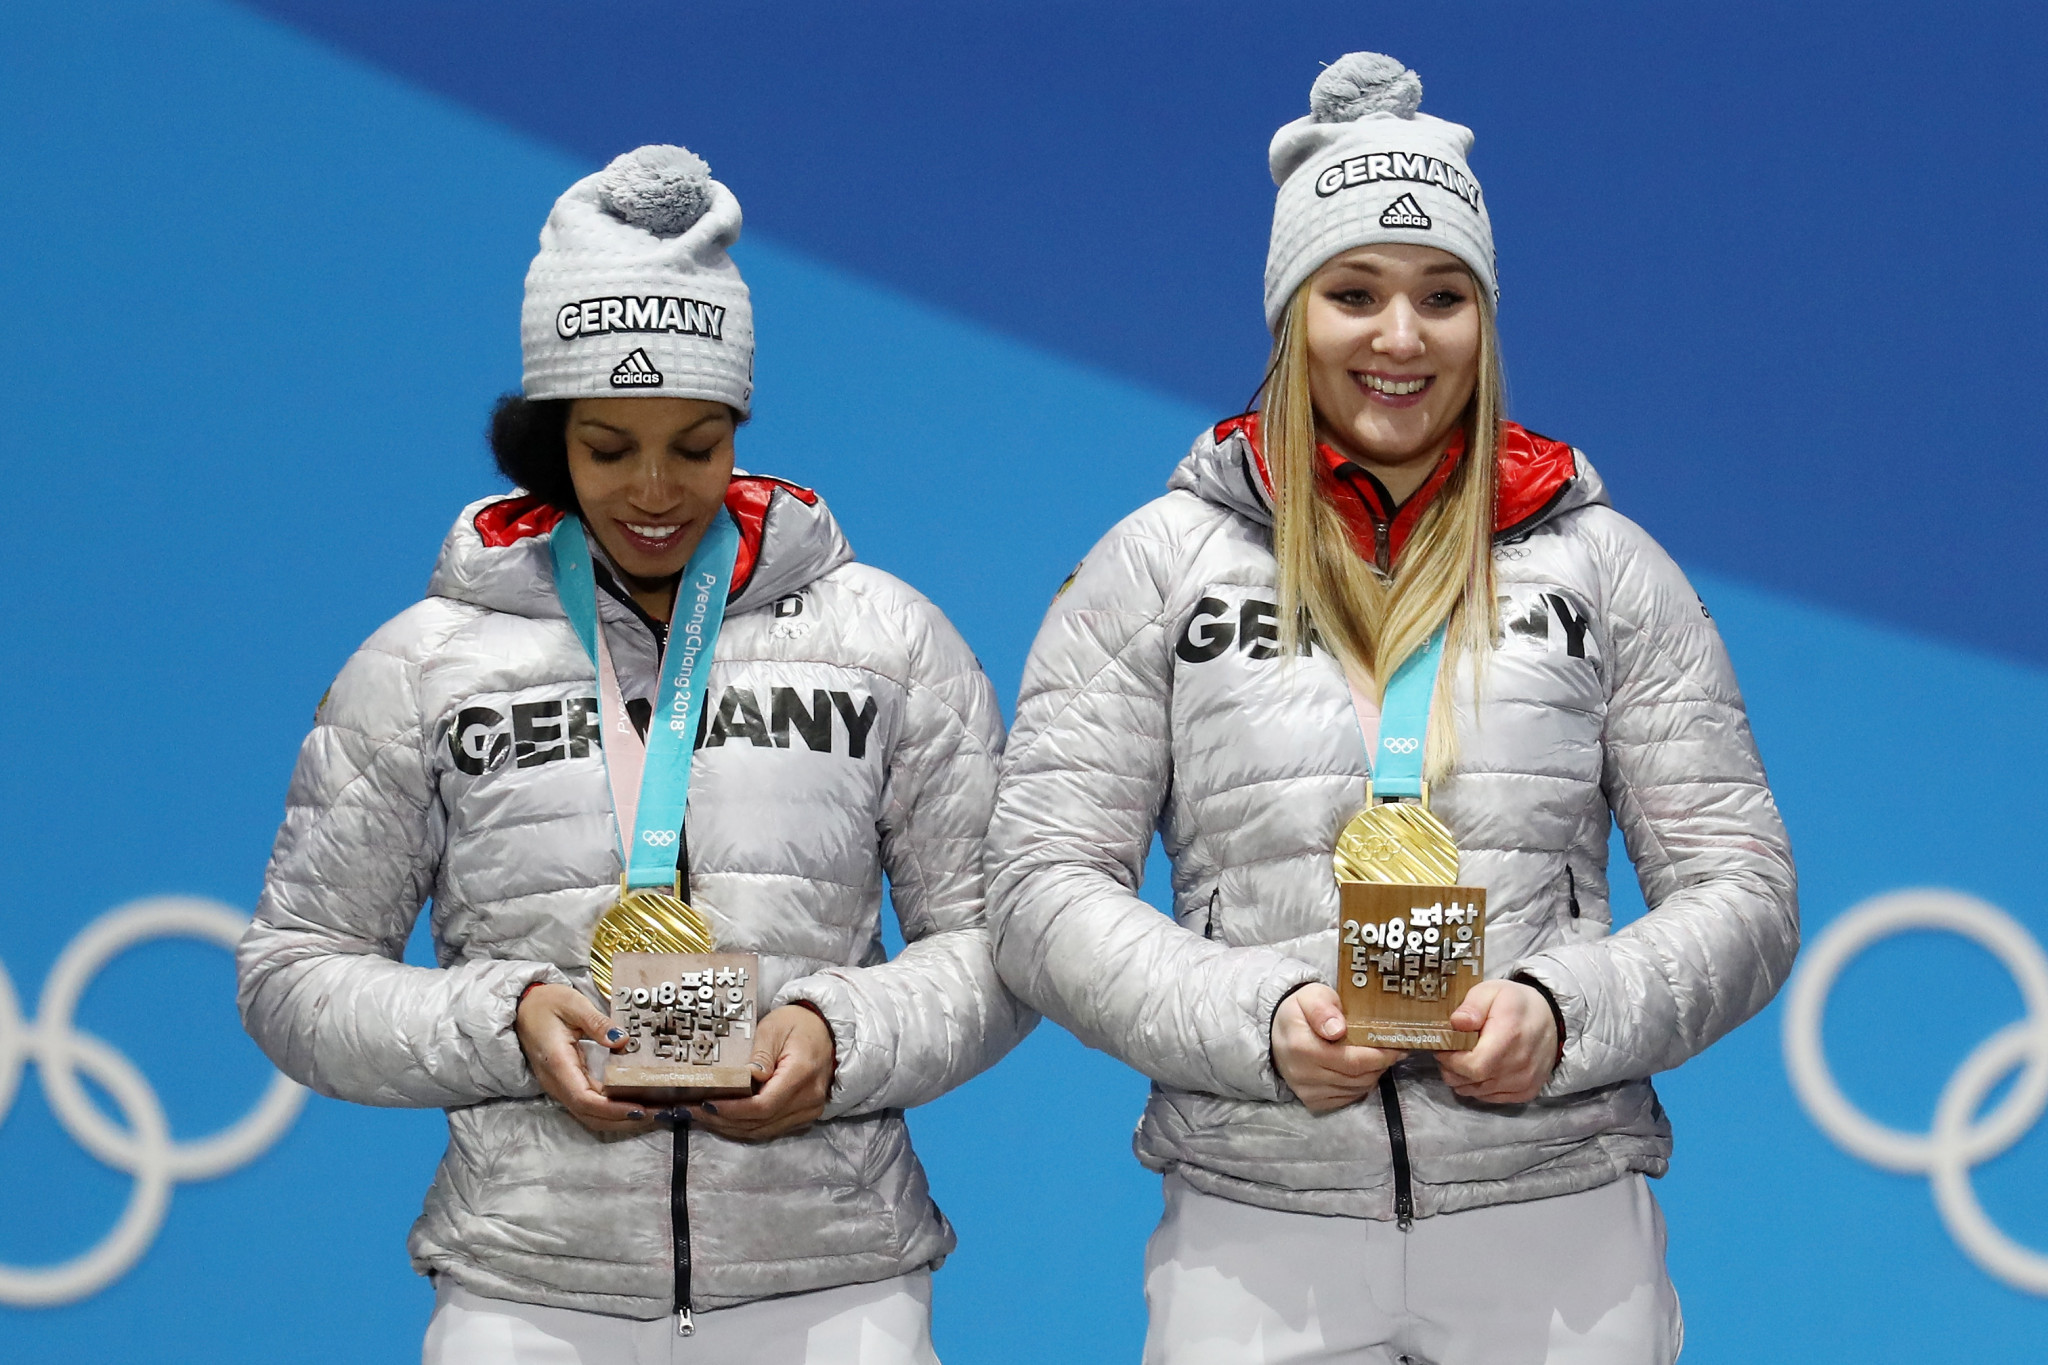 Olympic champion Mariama Jamanka of Germany, left, is currently leading the overall IBSF World Cup rankings in the two-woman bobsleigh ©Getty Images